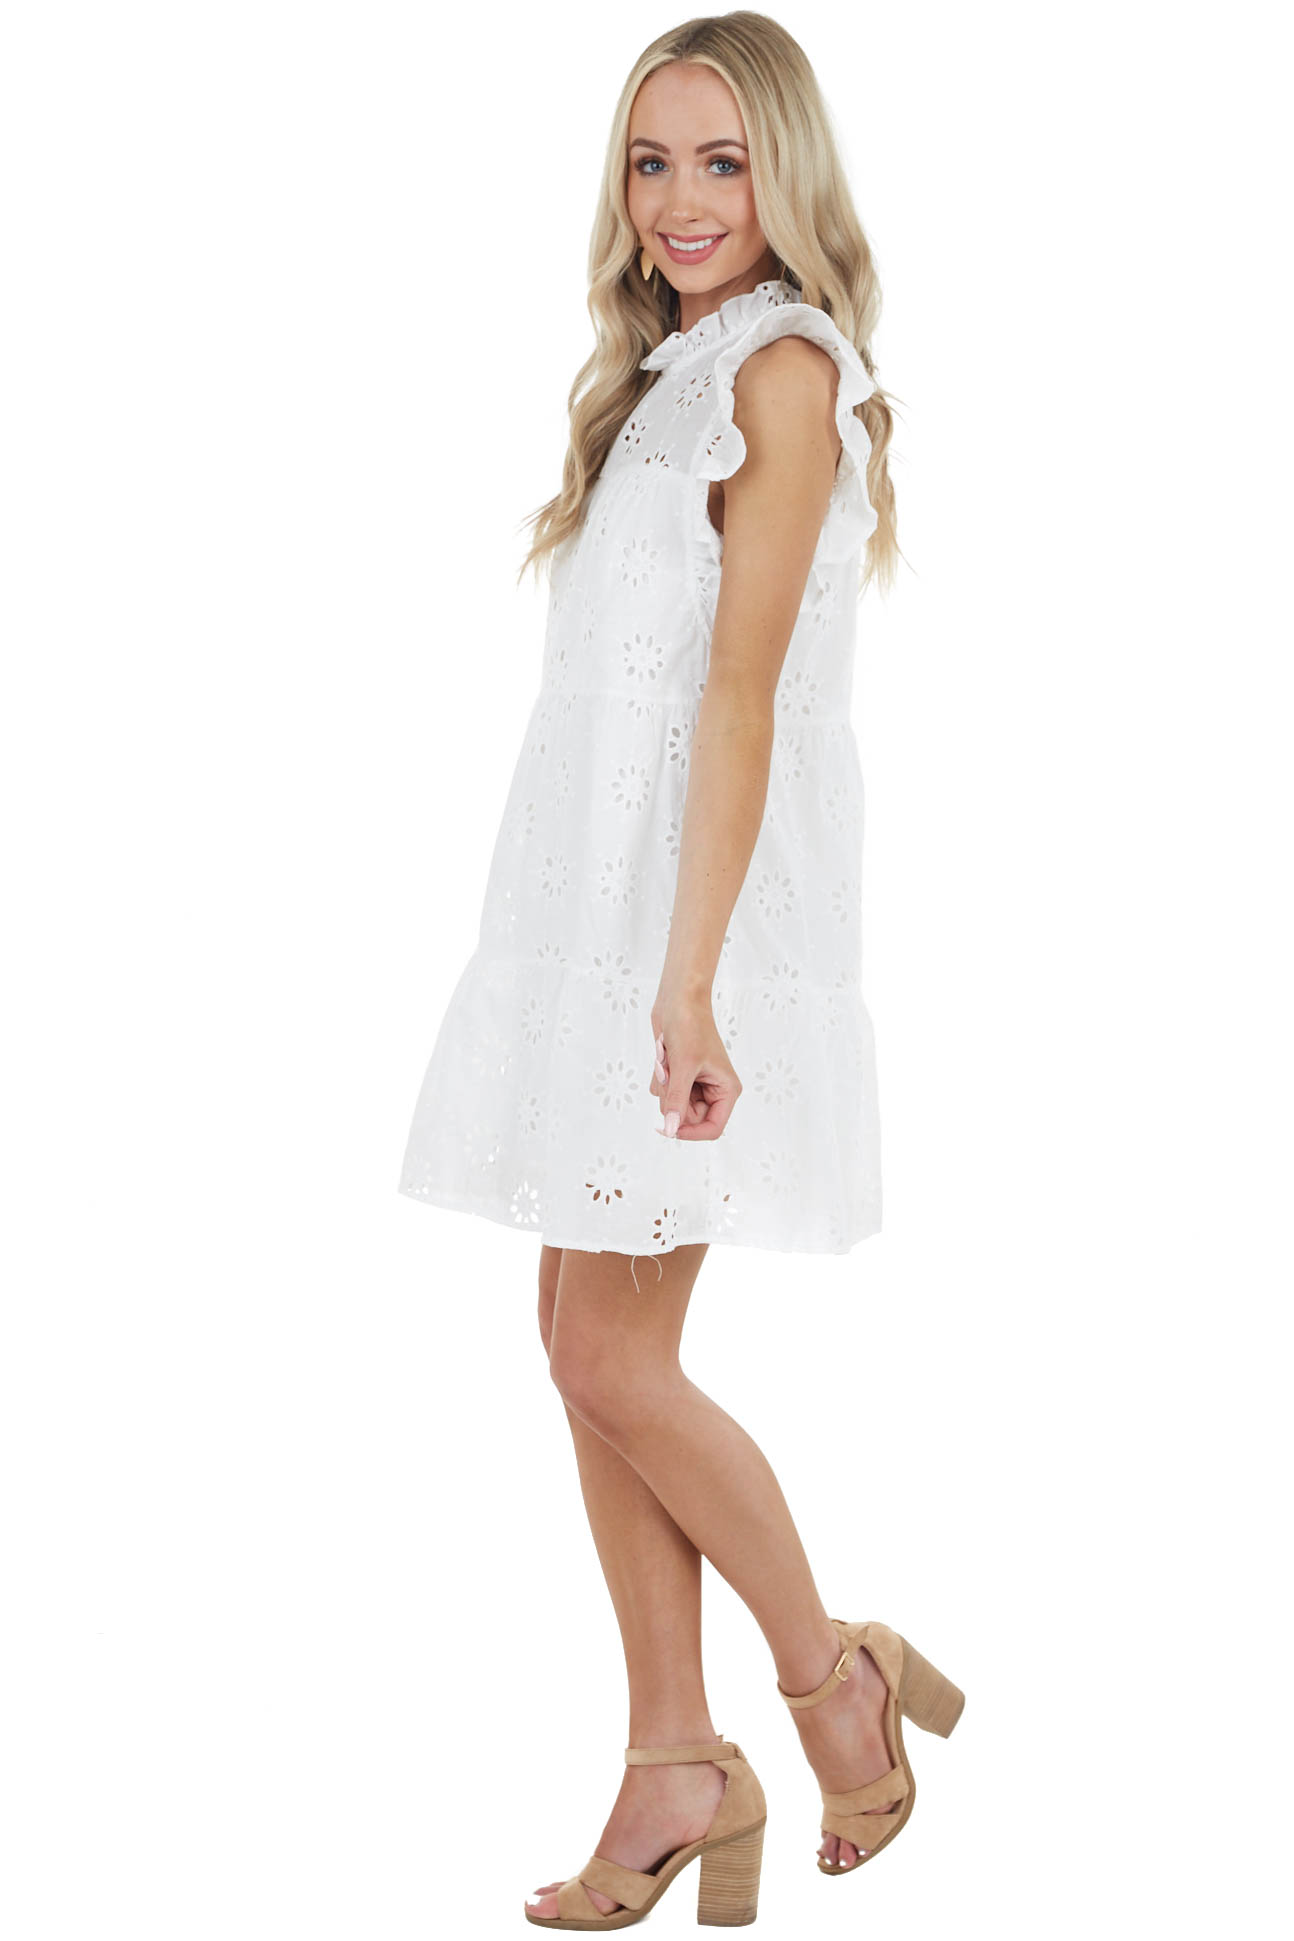 Off White Eyelet Lace Short Dress with Short Ruffle Sleeve